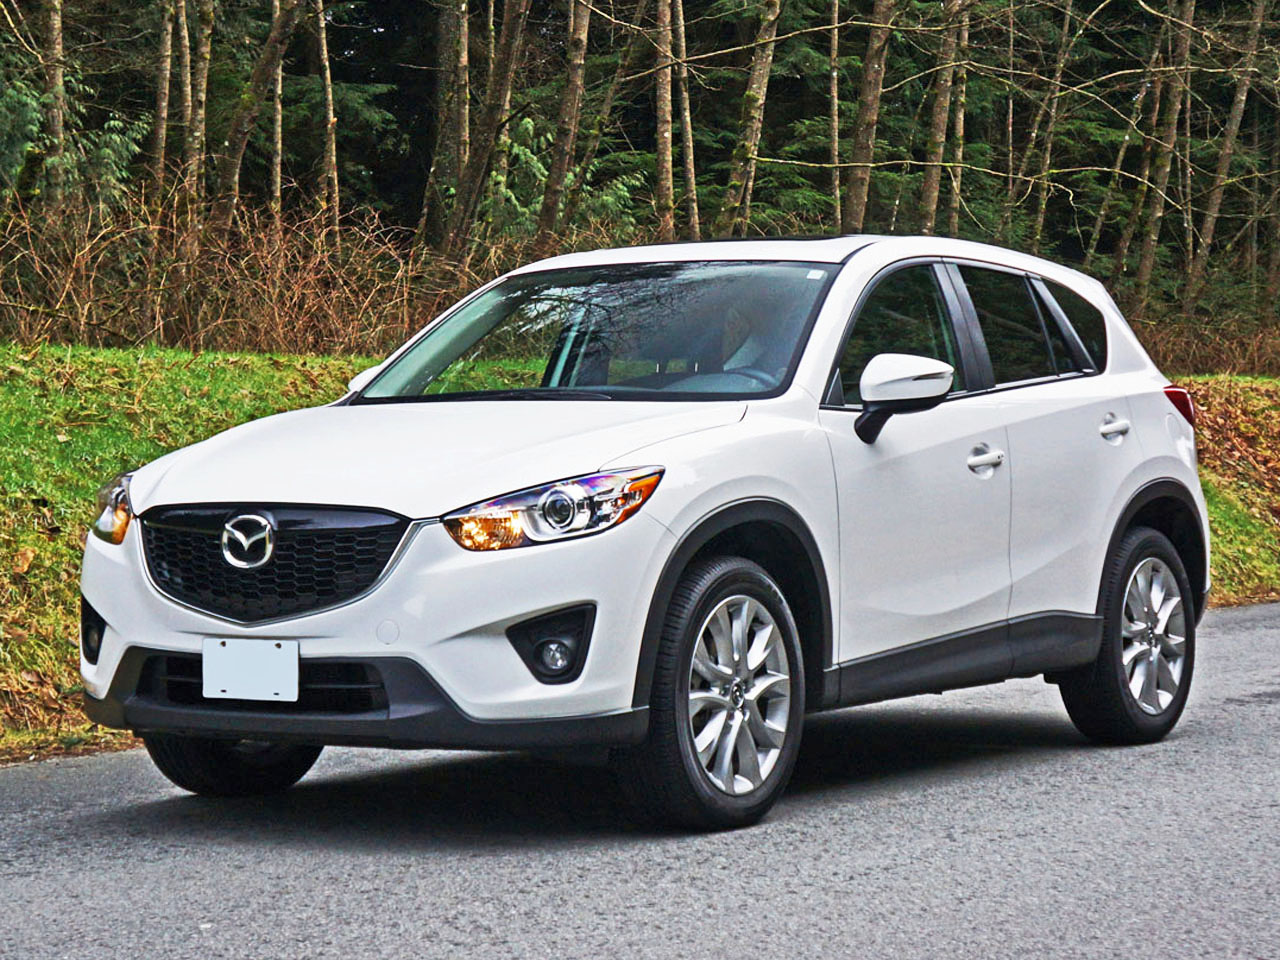 2015 mazda cx 5 gt awd road test review carcostcanada. Black Bedroom Furniture Sets. Home Design Ideas